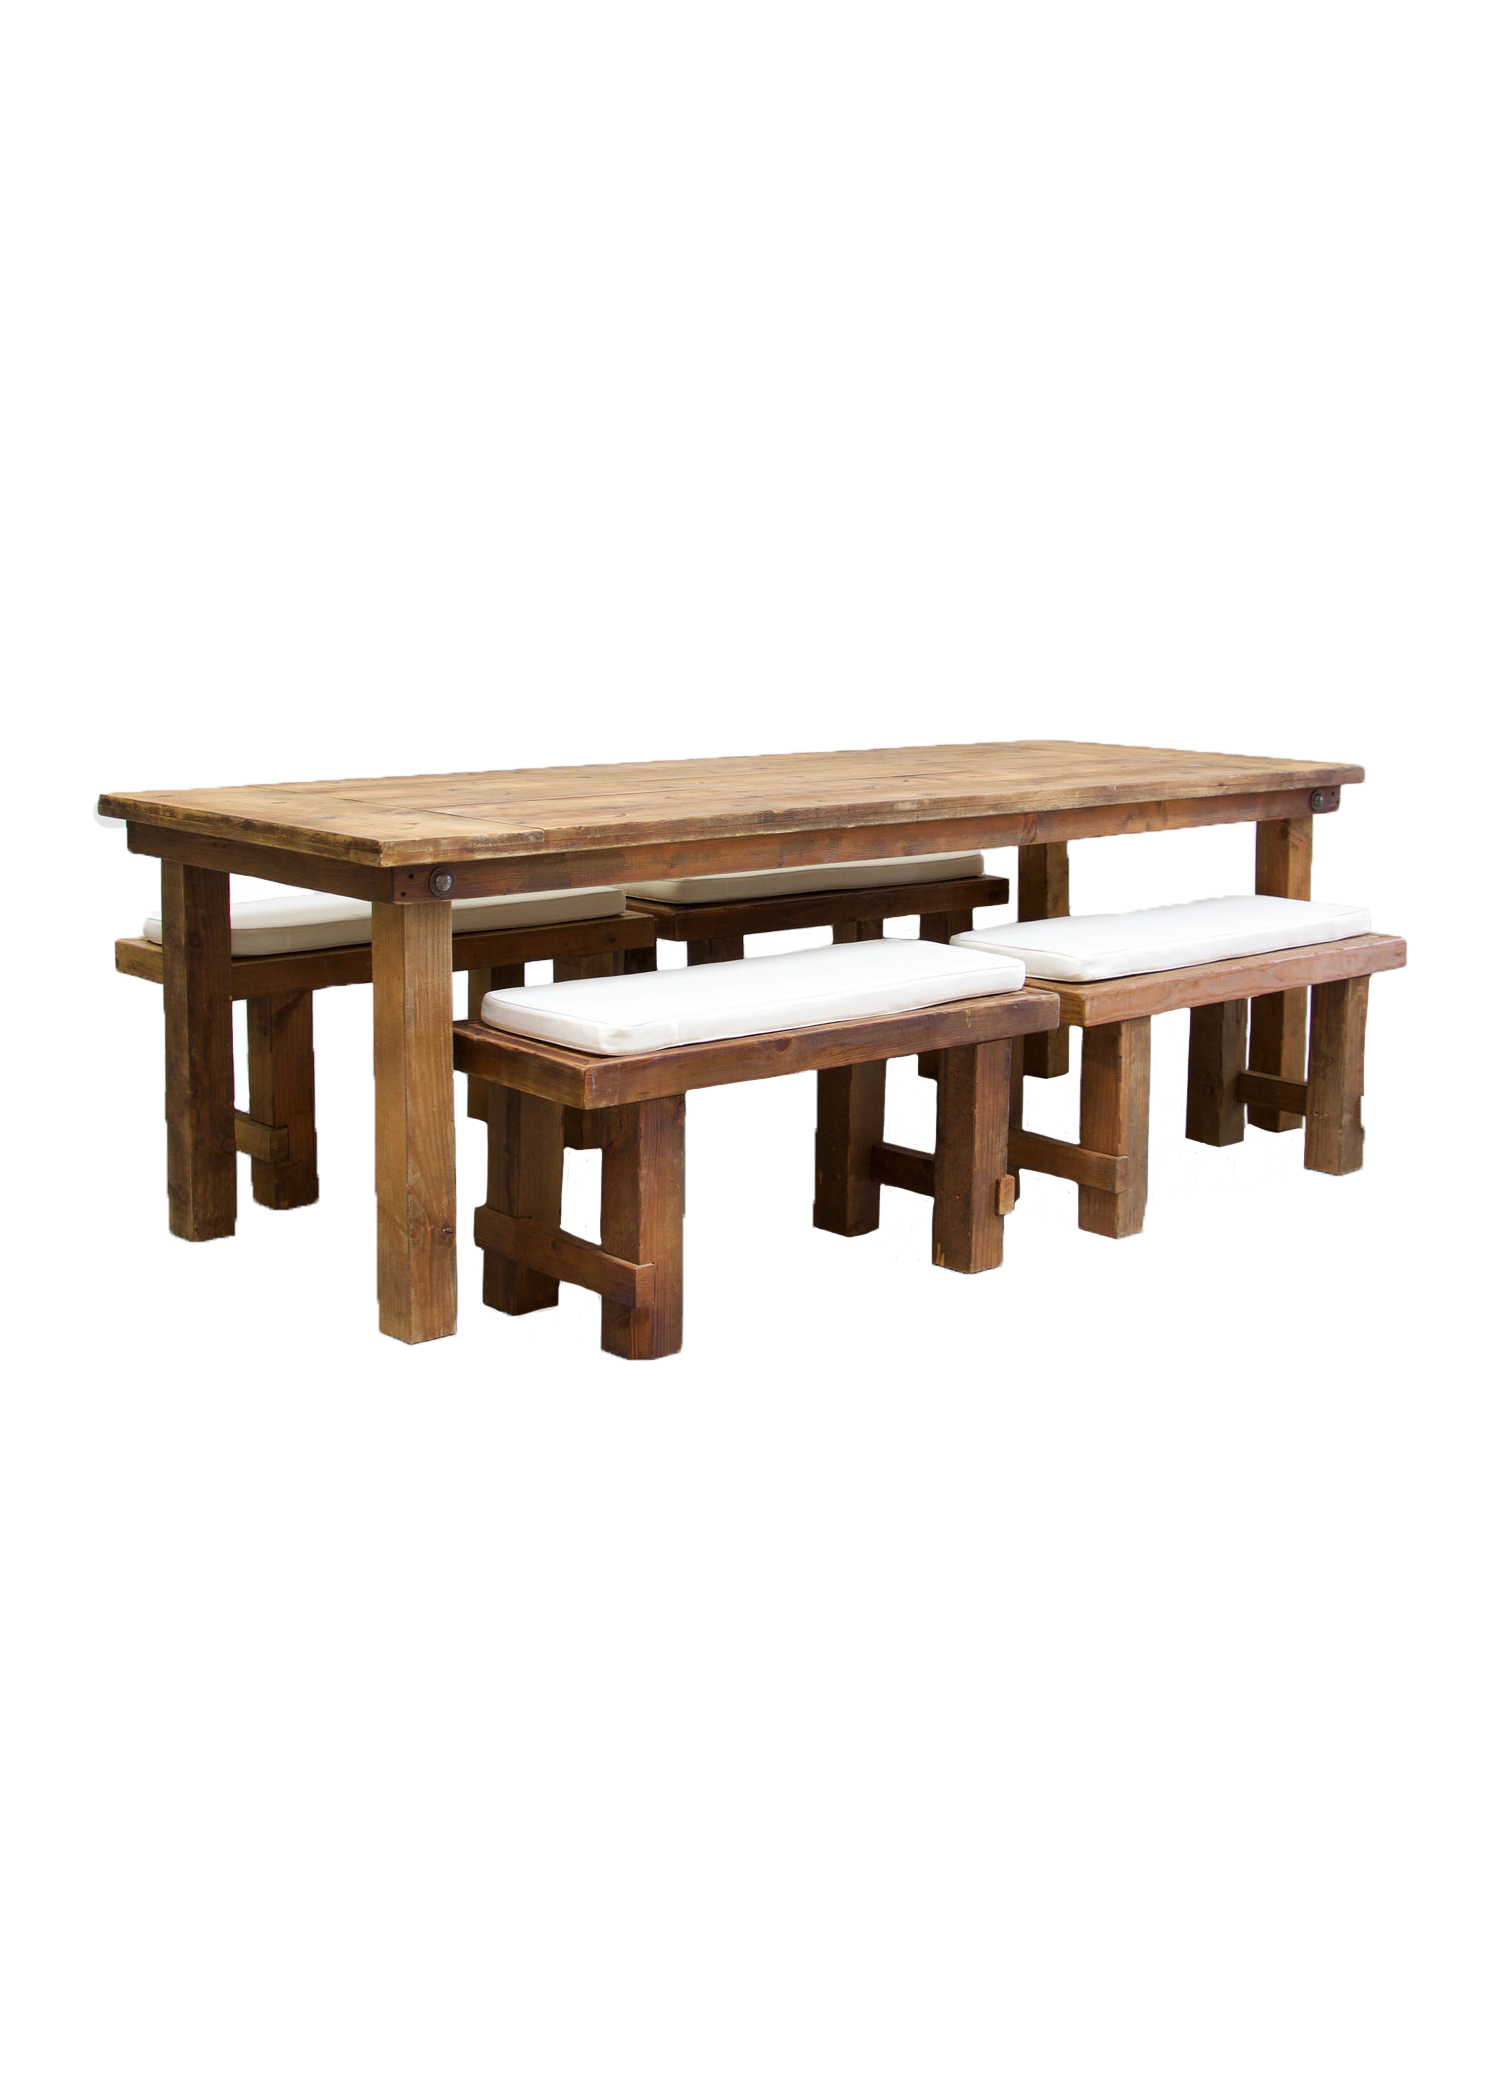 Honey Brown Farm Table with 4 Short Benches $145